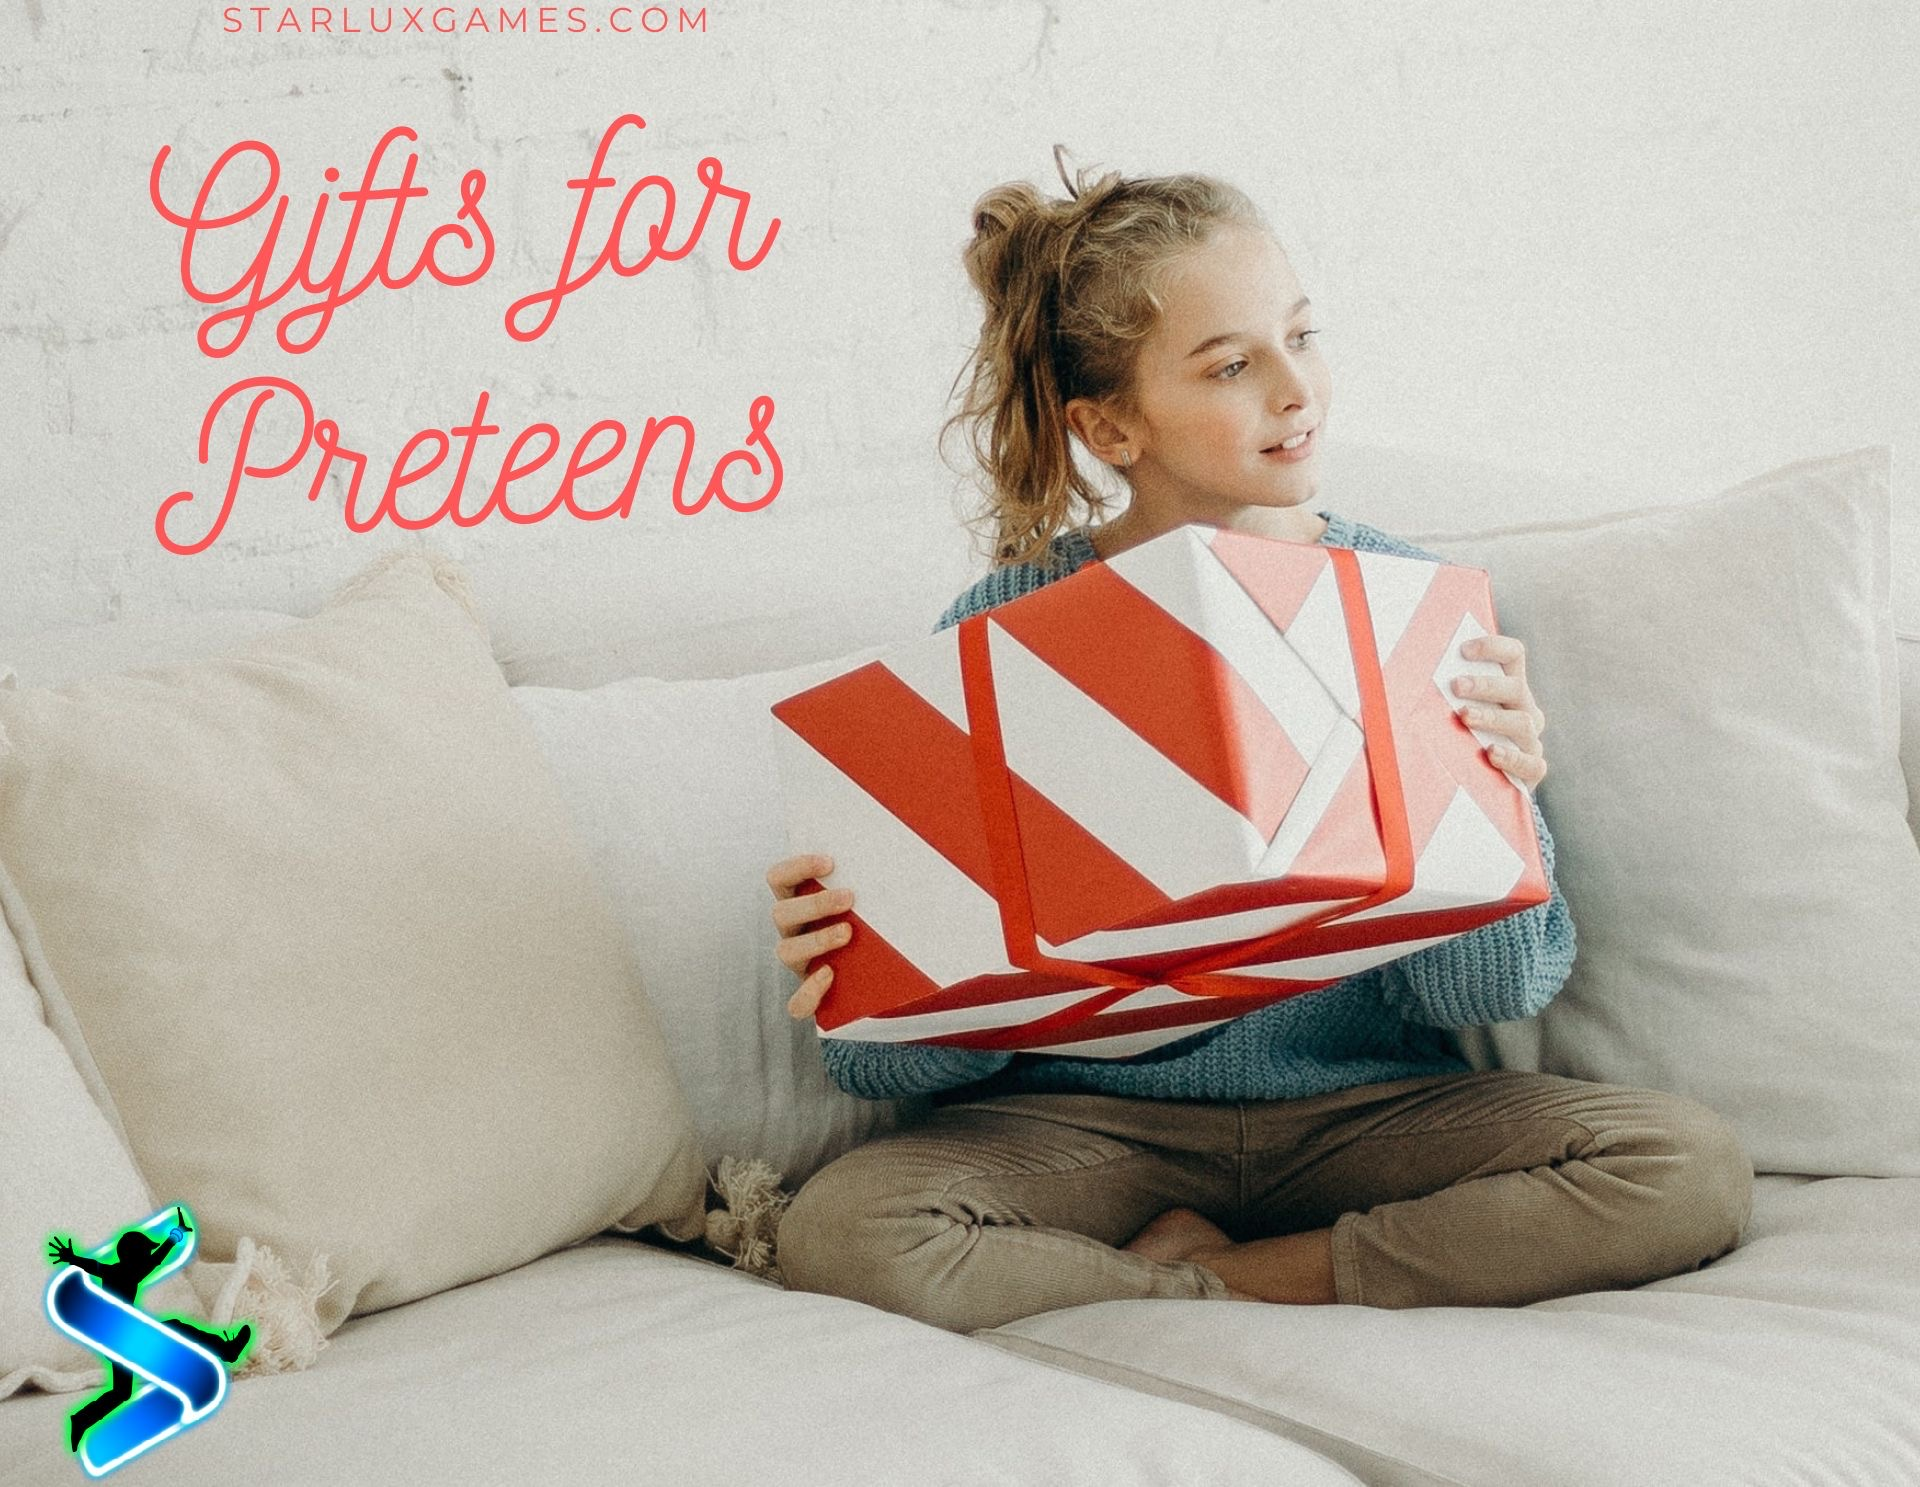 A preteen sits on a couch with a wrapped present in her lap.